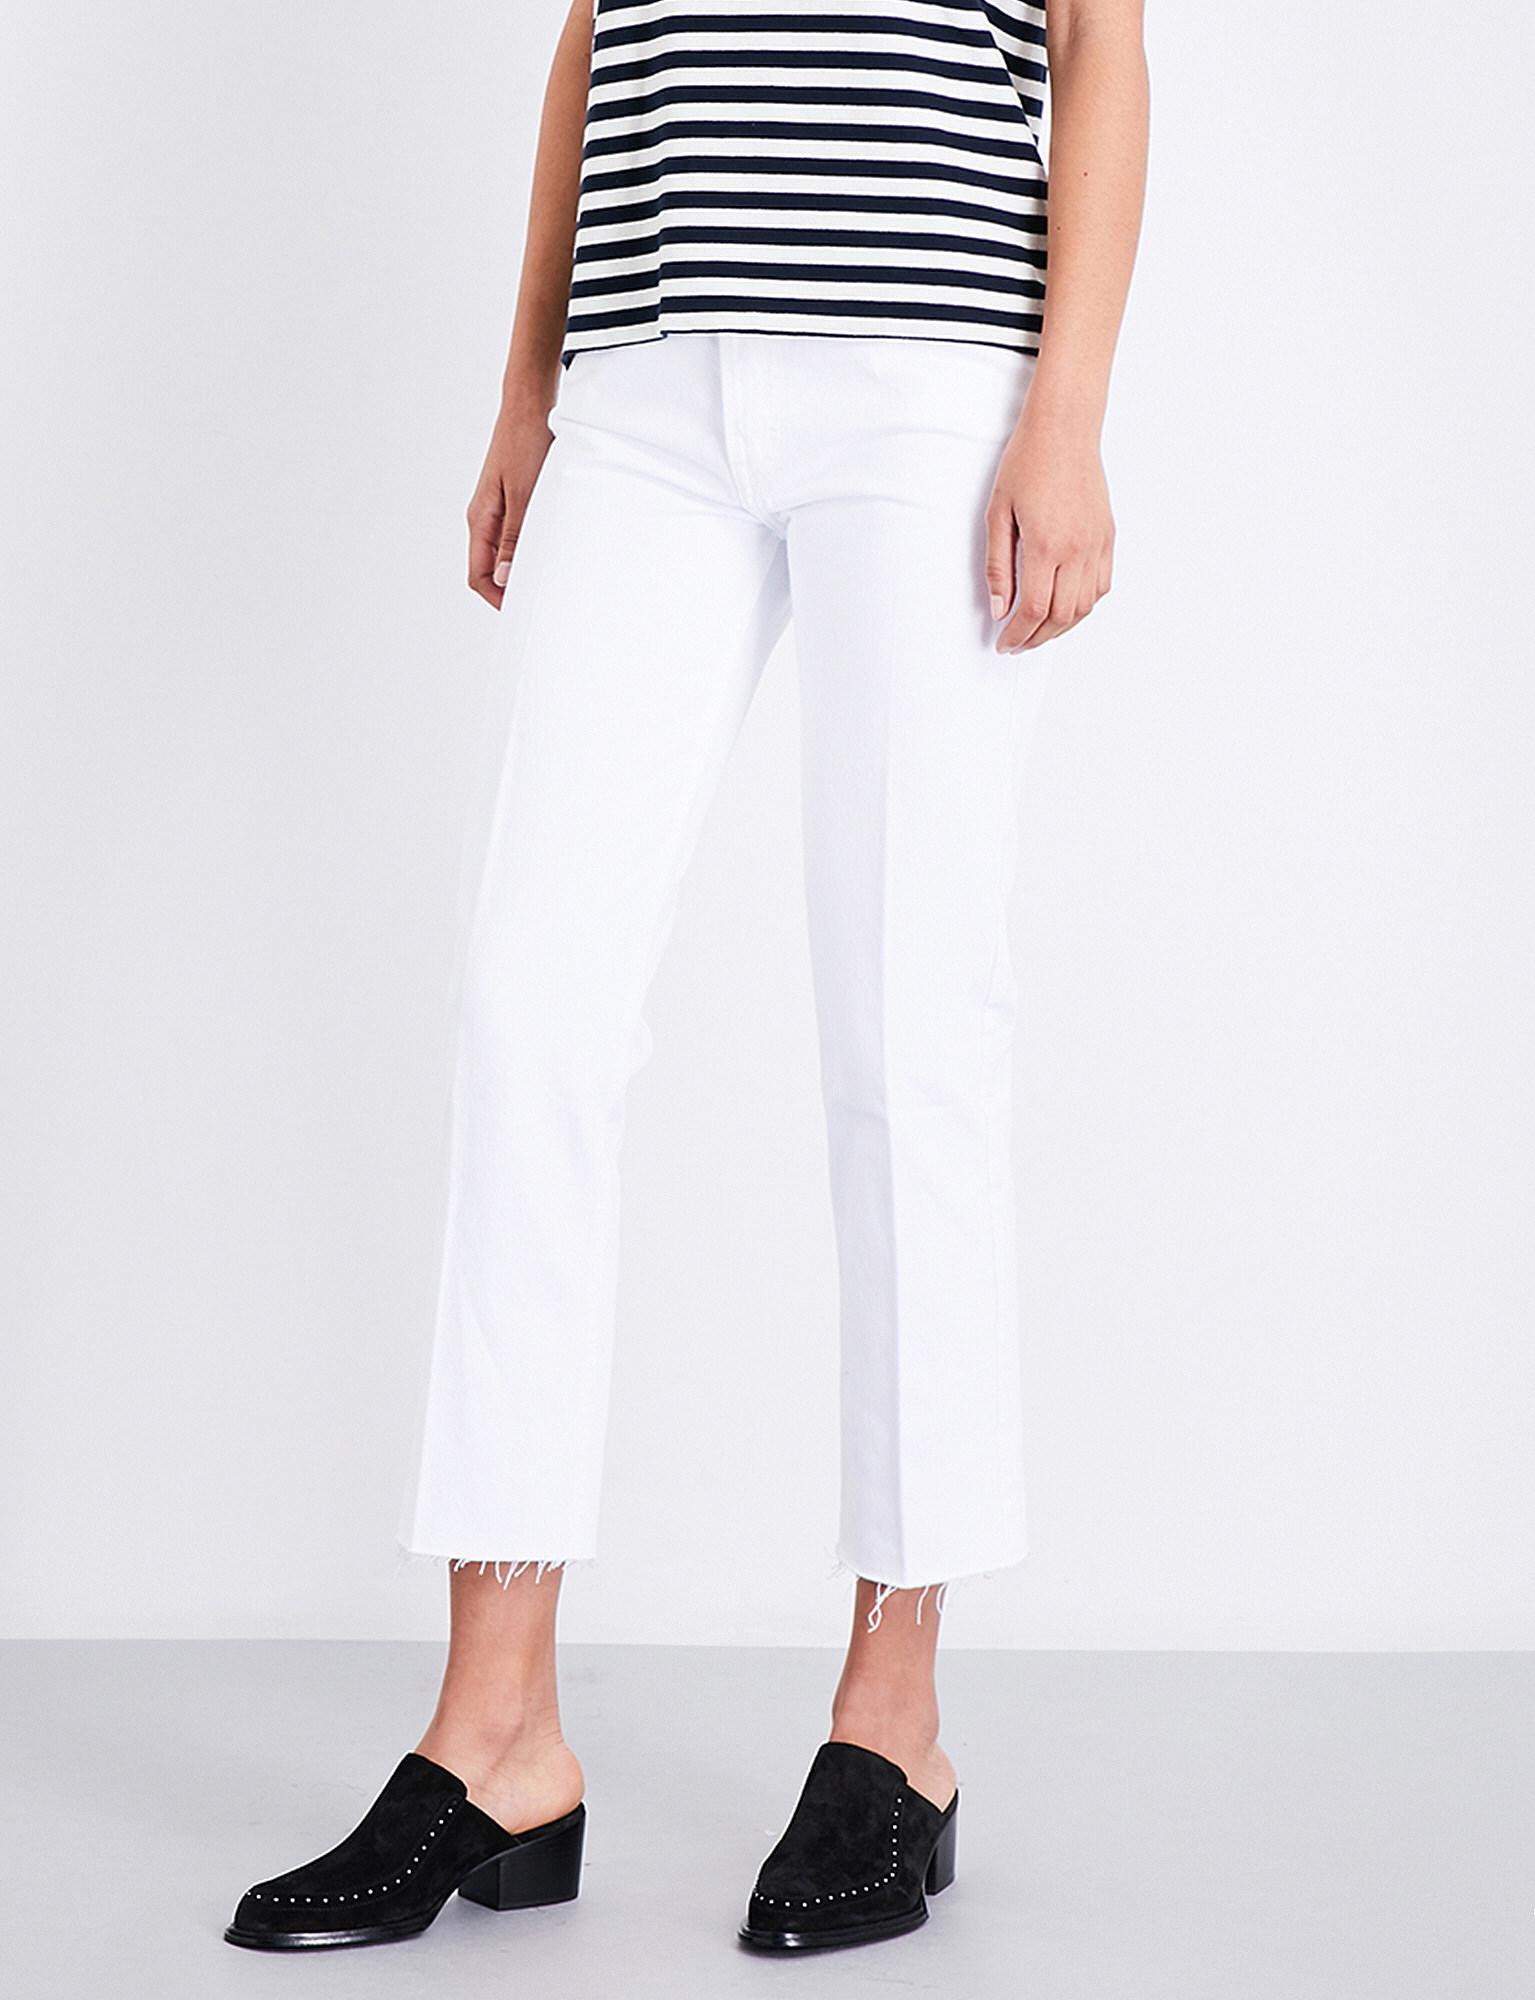 85ce5d5eb121 Lyst - RE DONE Stove Pipe Straight Cropped High-rise Jeans in White